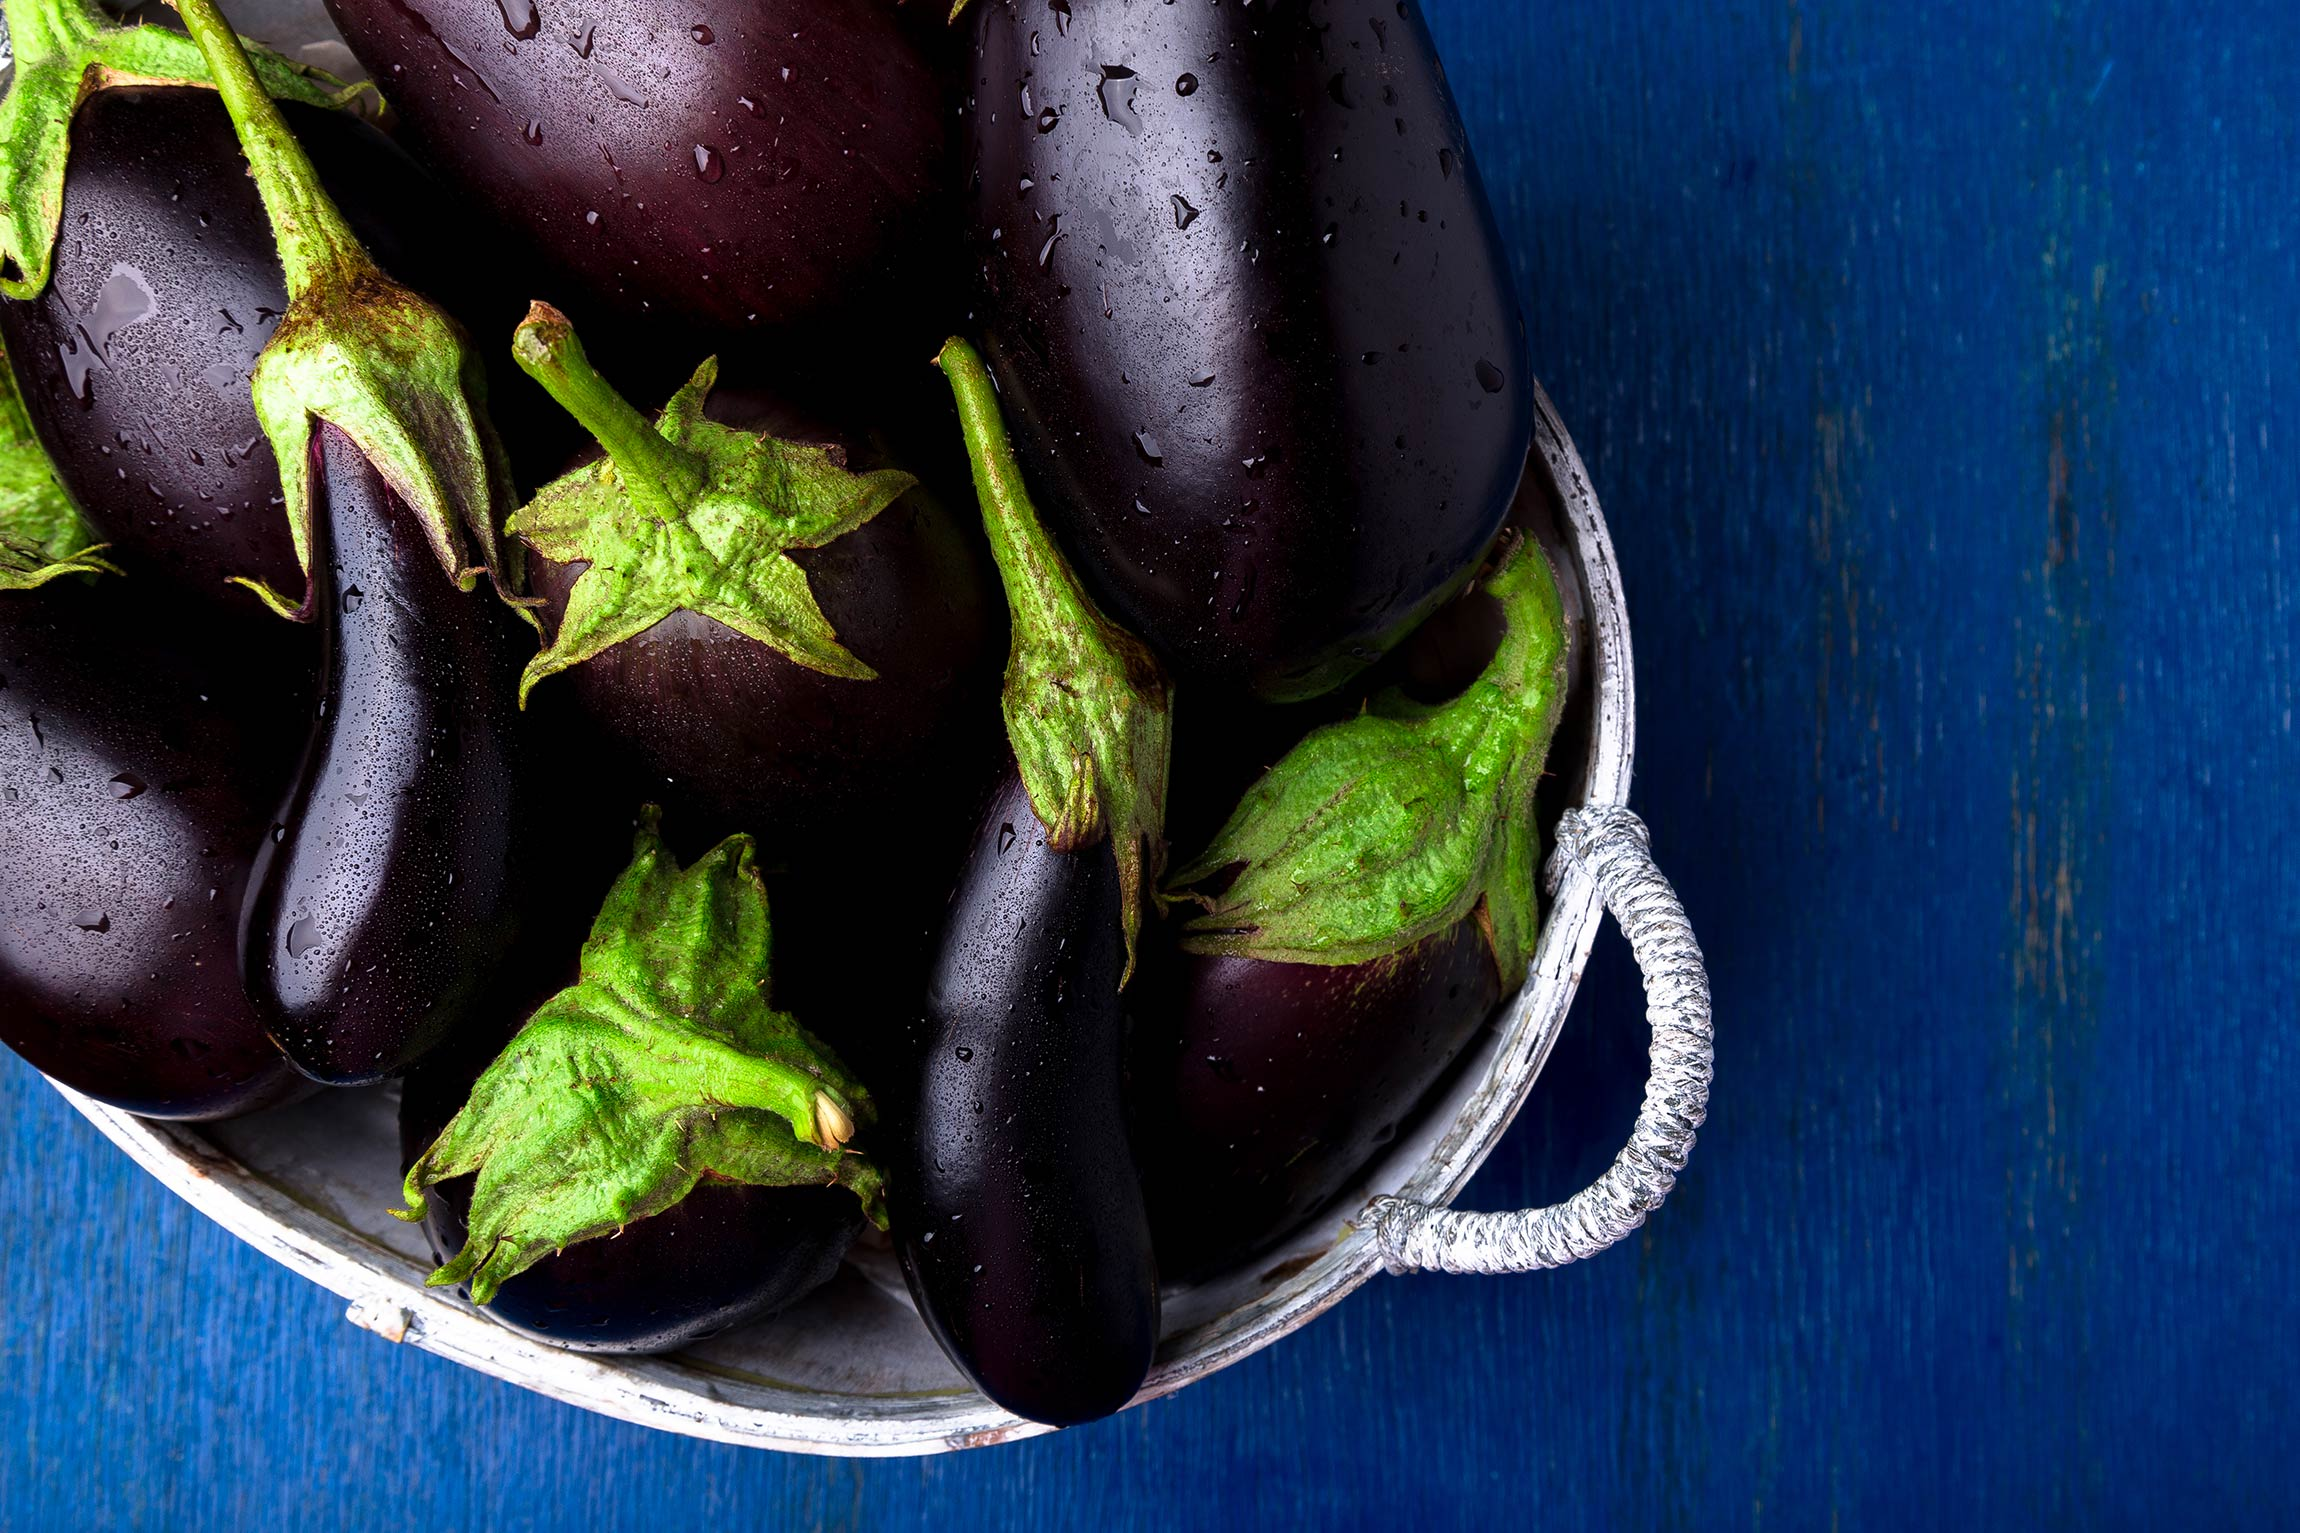 Fall fruits and vegetables: what's in season? Eggplant